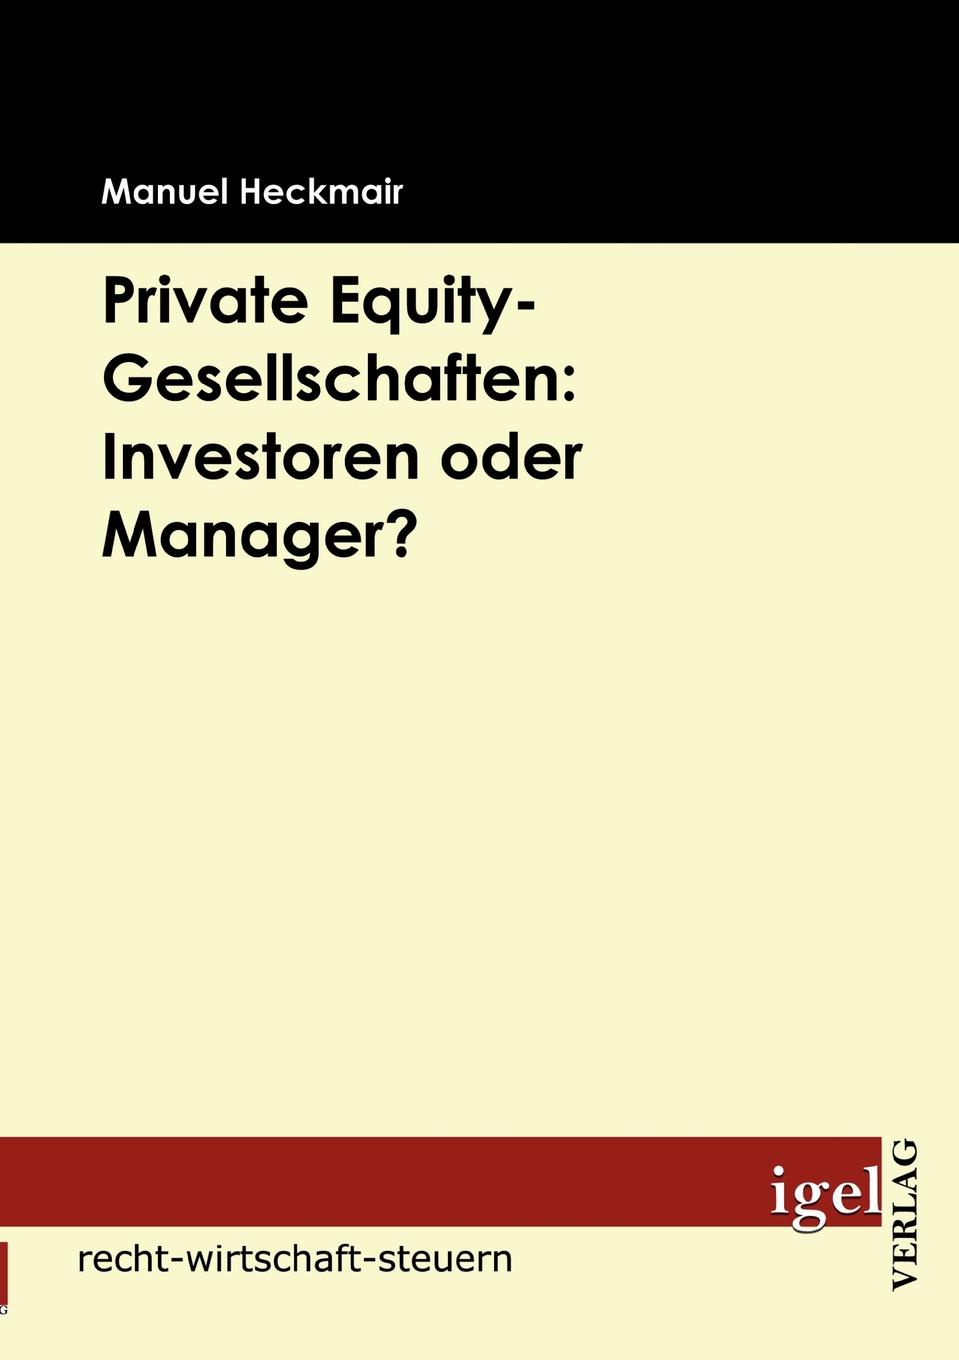 Manuel Heckmair Private Equity-Gesellschaften. Investoren oder Manager. bowen white mastering private equity set